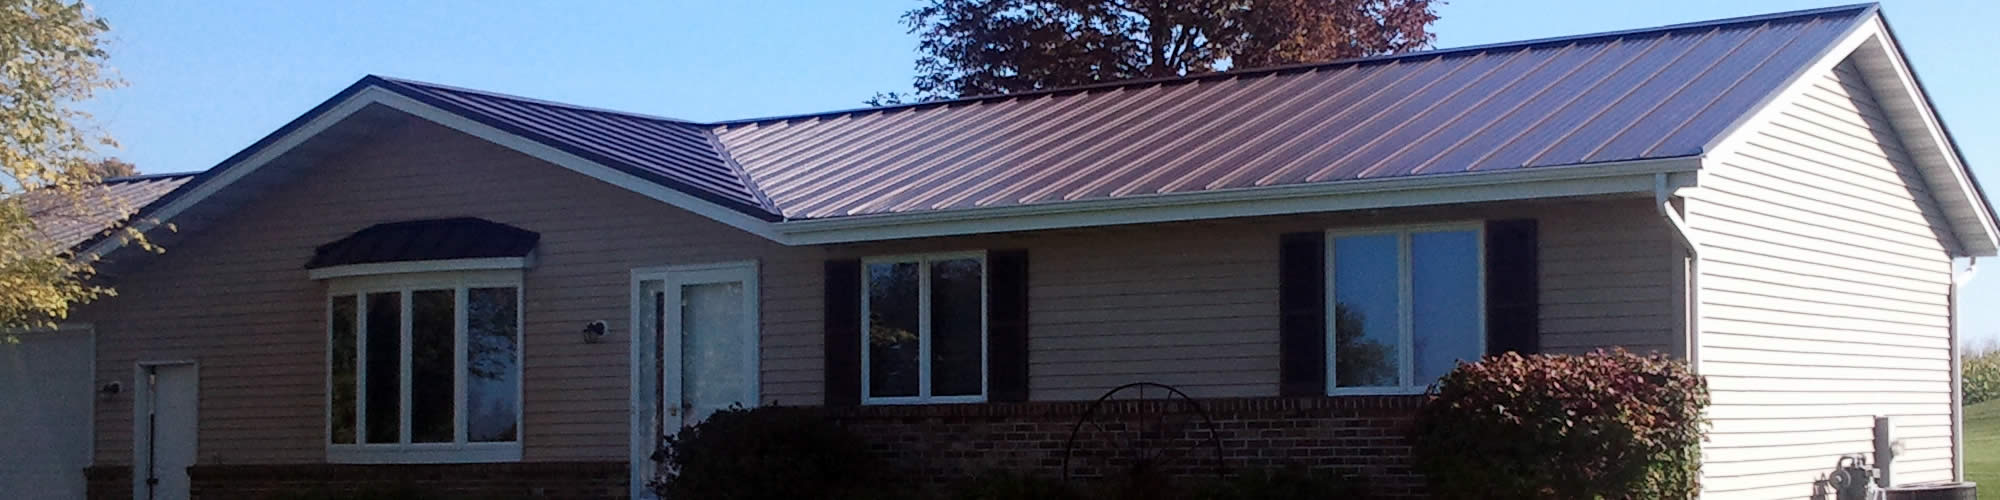 Standing Seam Metal Roofing Contractor near me